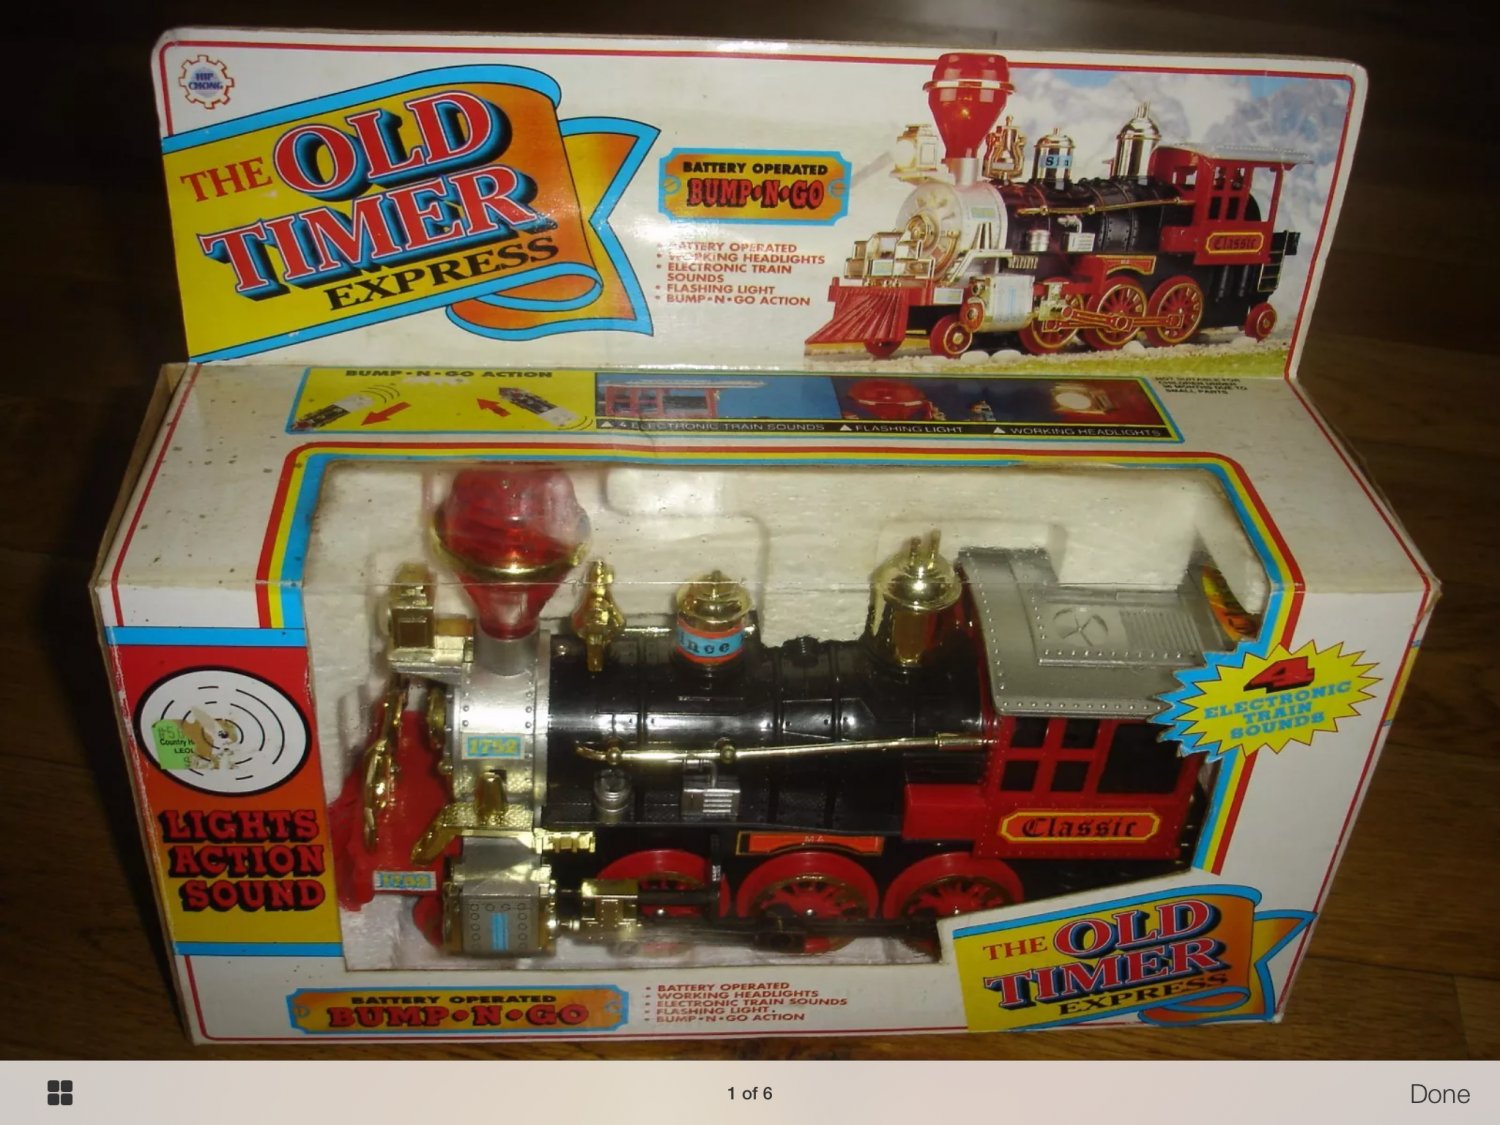 Vintage old timers express toy train.  NIB